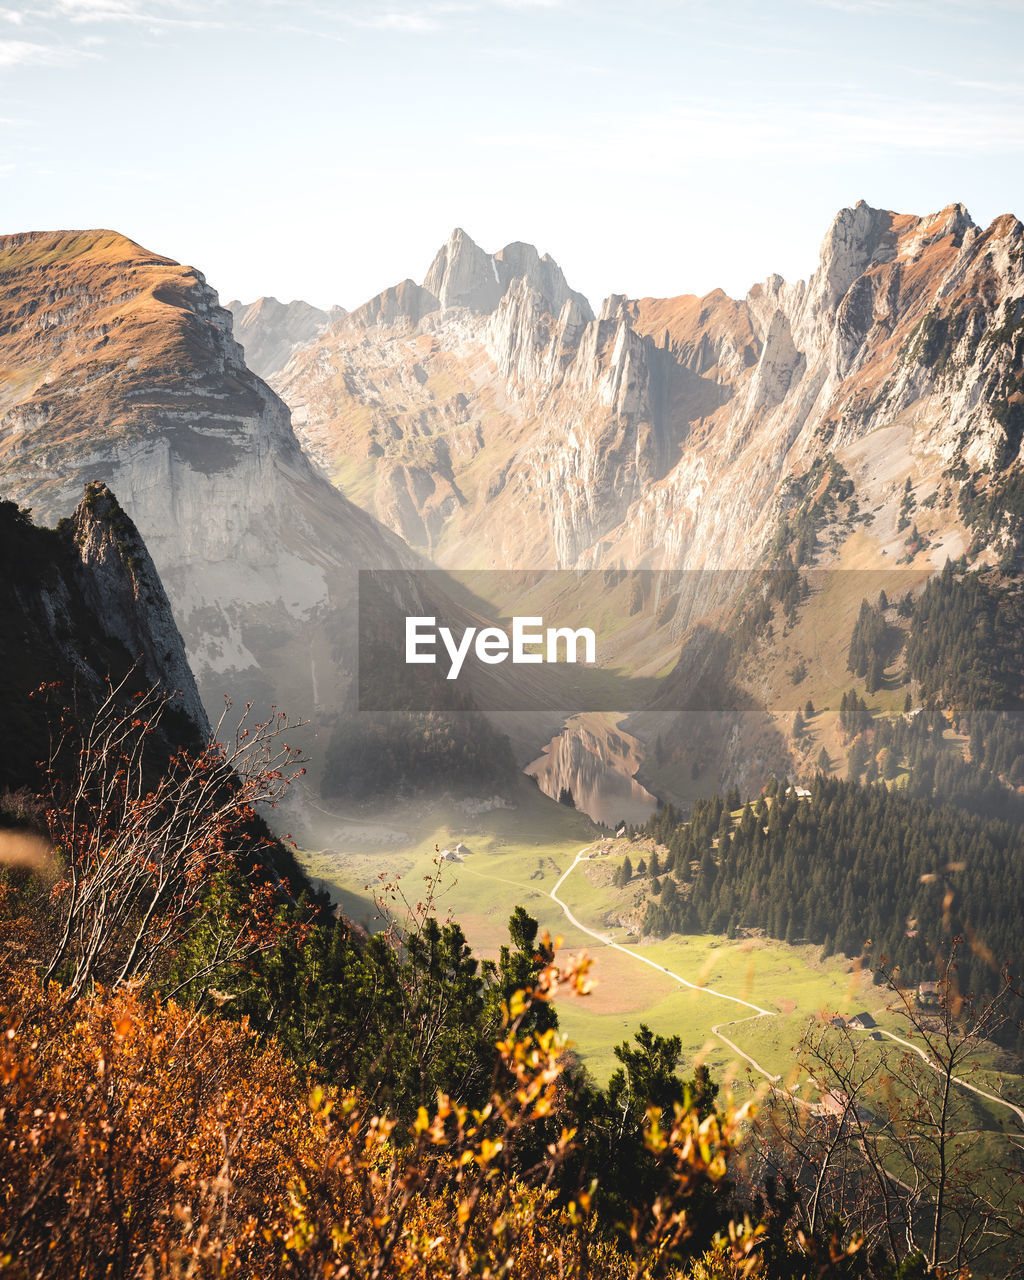 SCENIC VIEW OF MOUNTAINS AND SKY